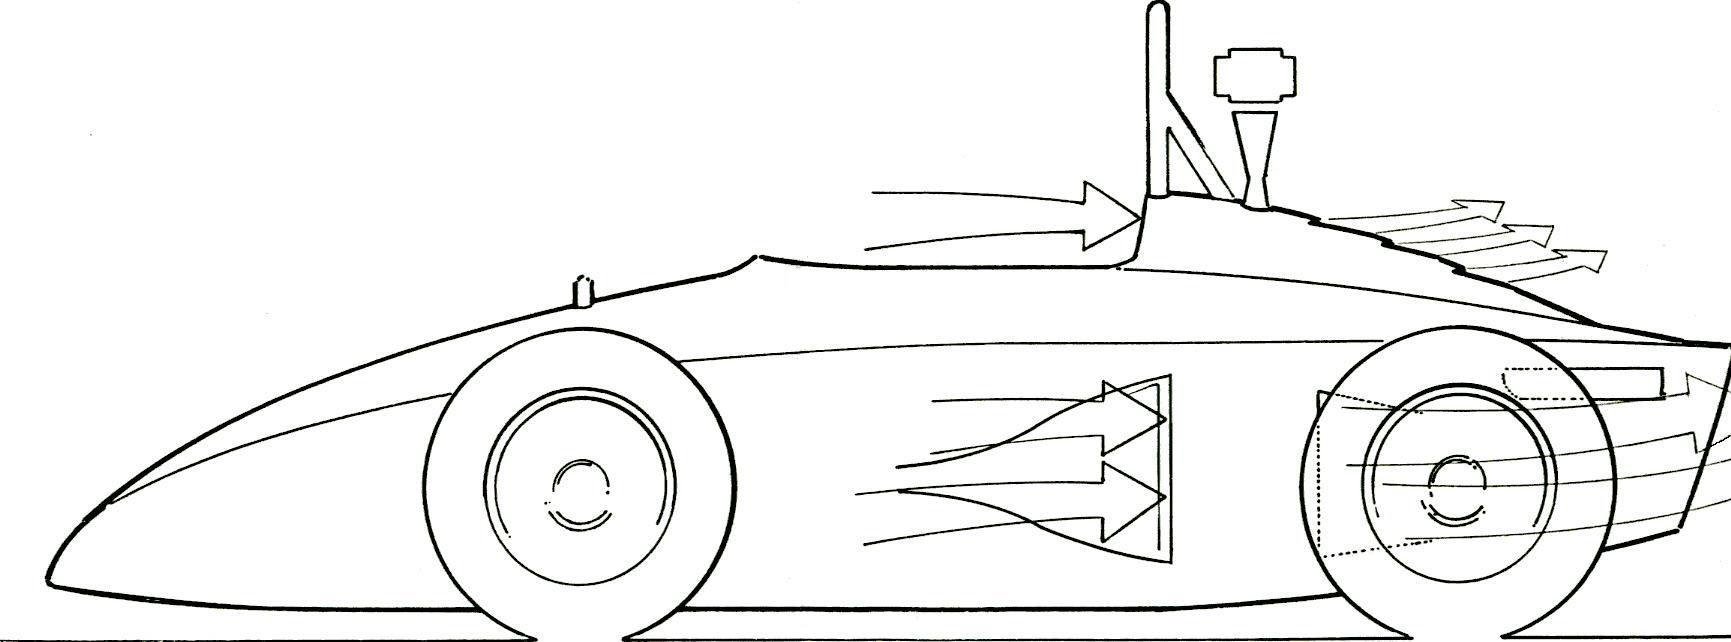 Concept drawing of 1987 car